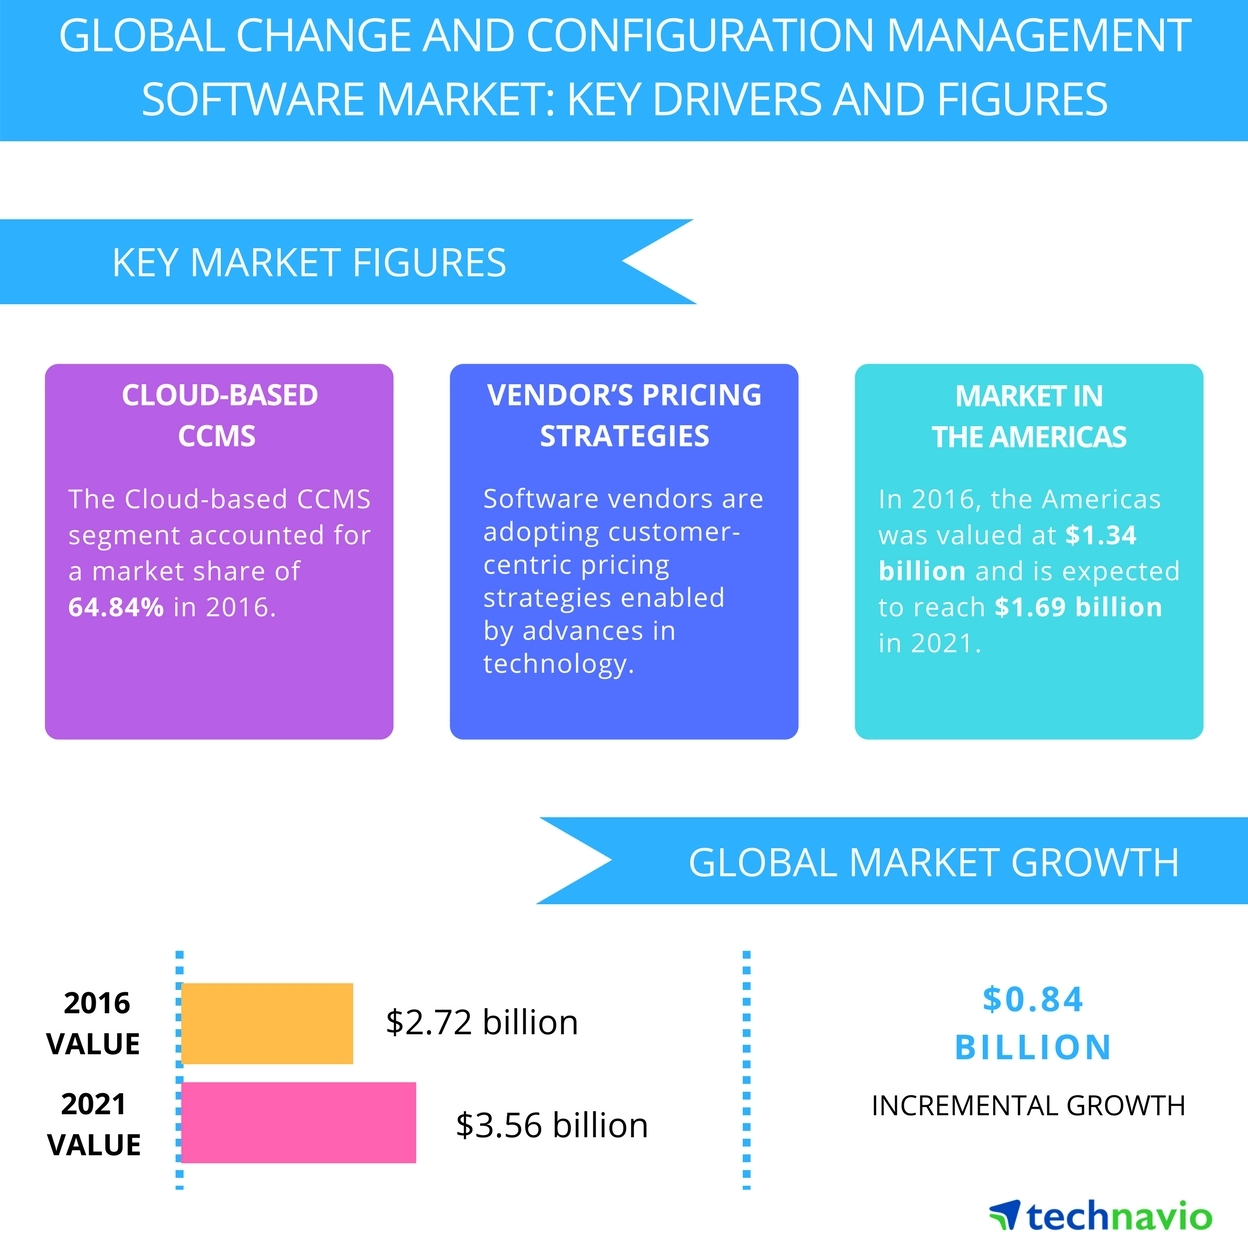 Technavio has announced the release of their 'Global Change and Configuration Management Software Market 2017-2021' report. (Graphic: Business Wire)